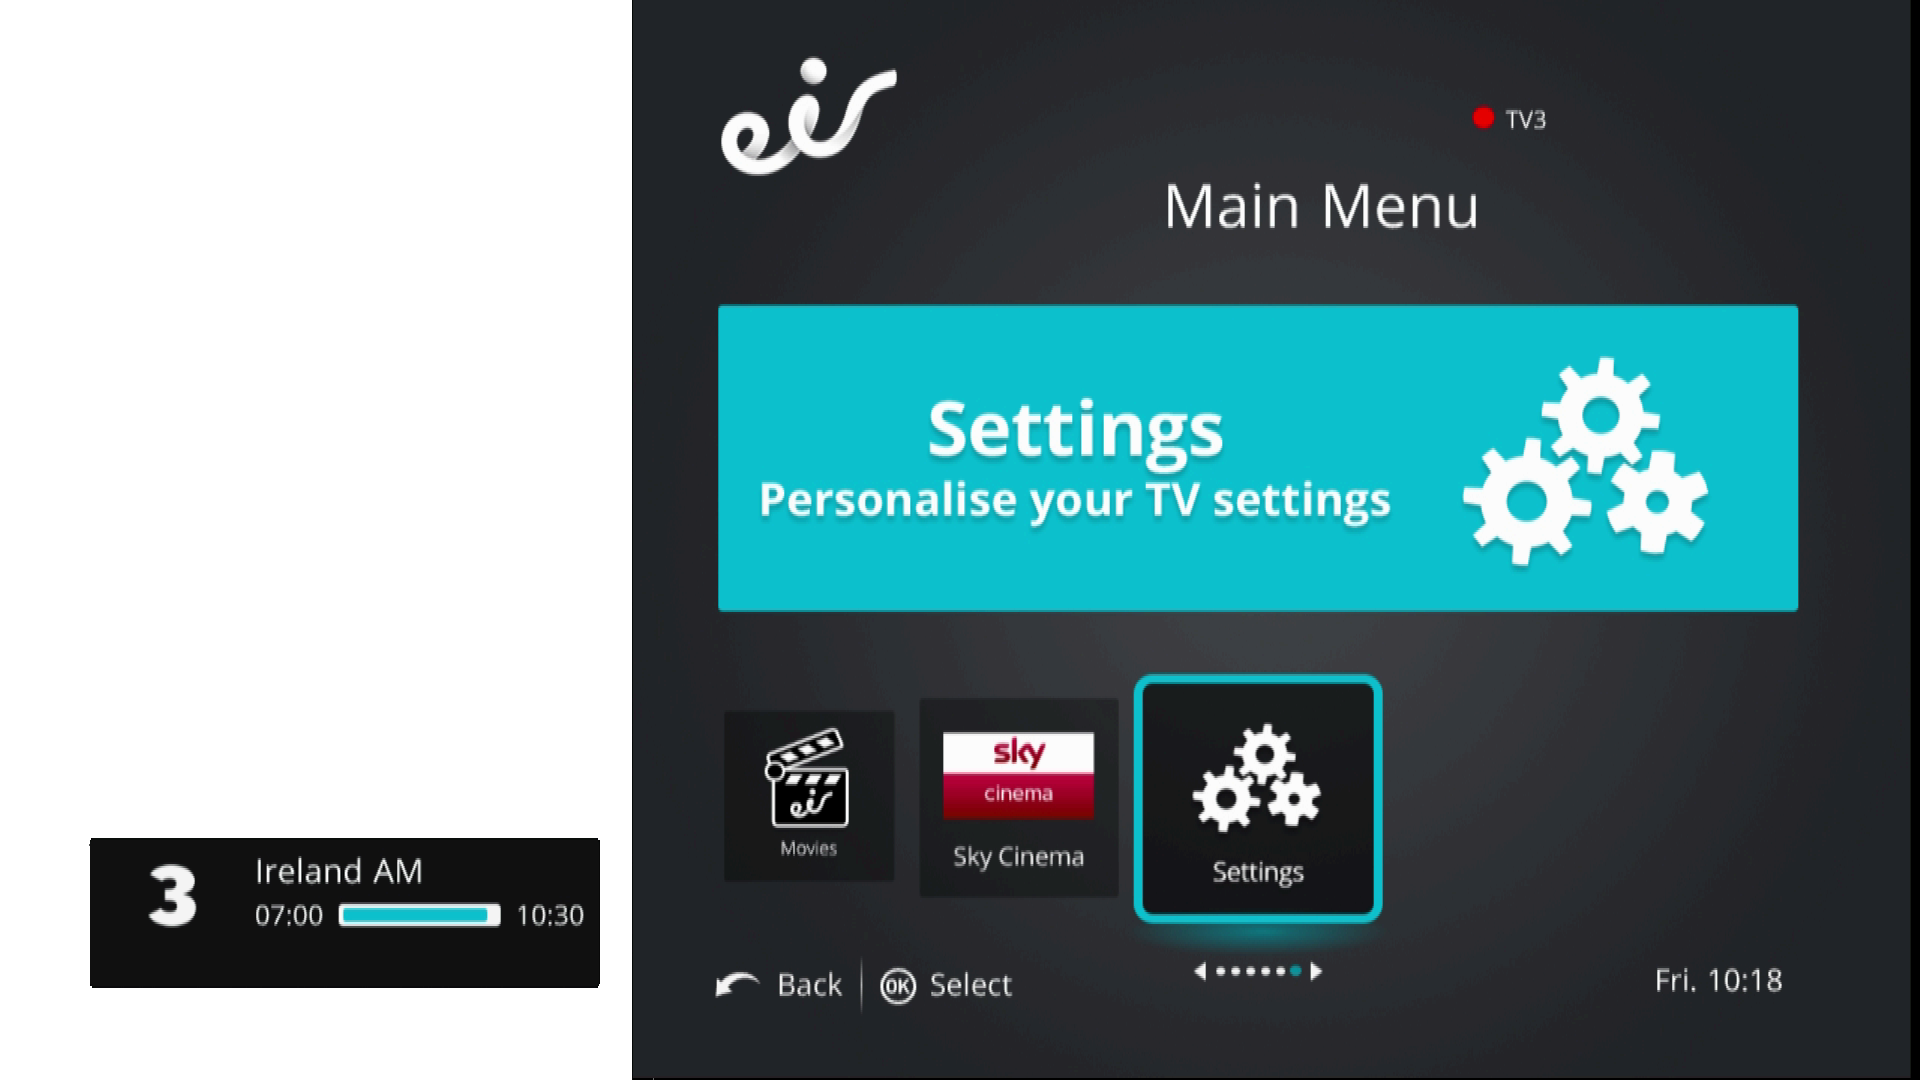 settings personalise your tv